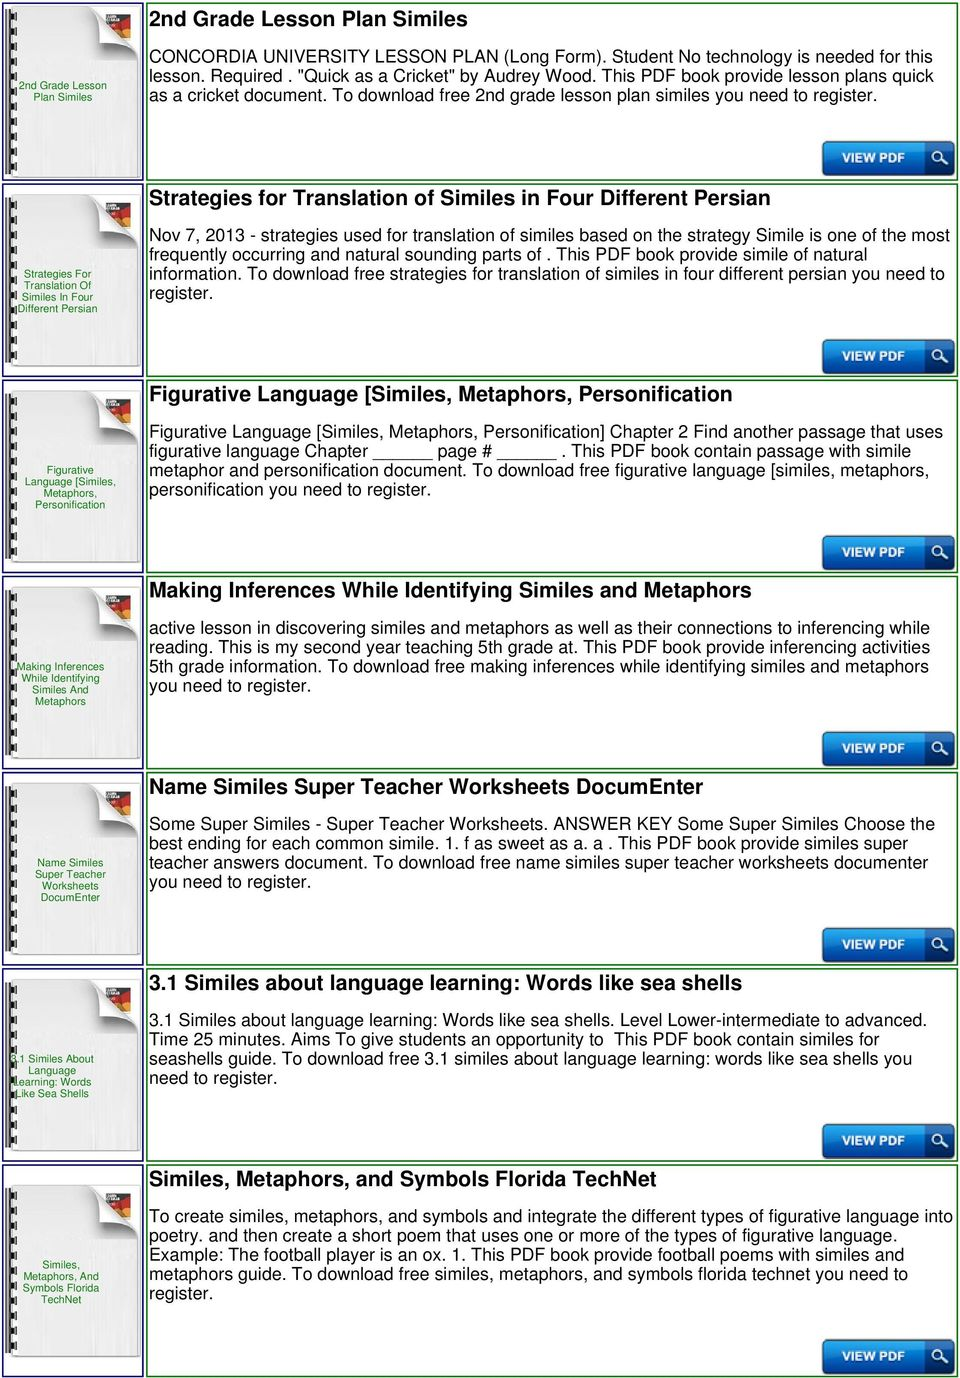 To Download Free 2nd Grade Lesson Plan Similes You Strategies For Translation Of In Four Different